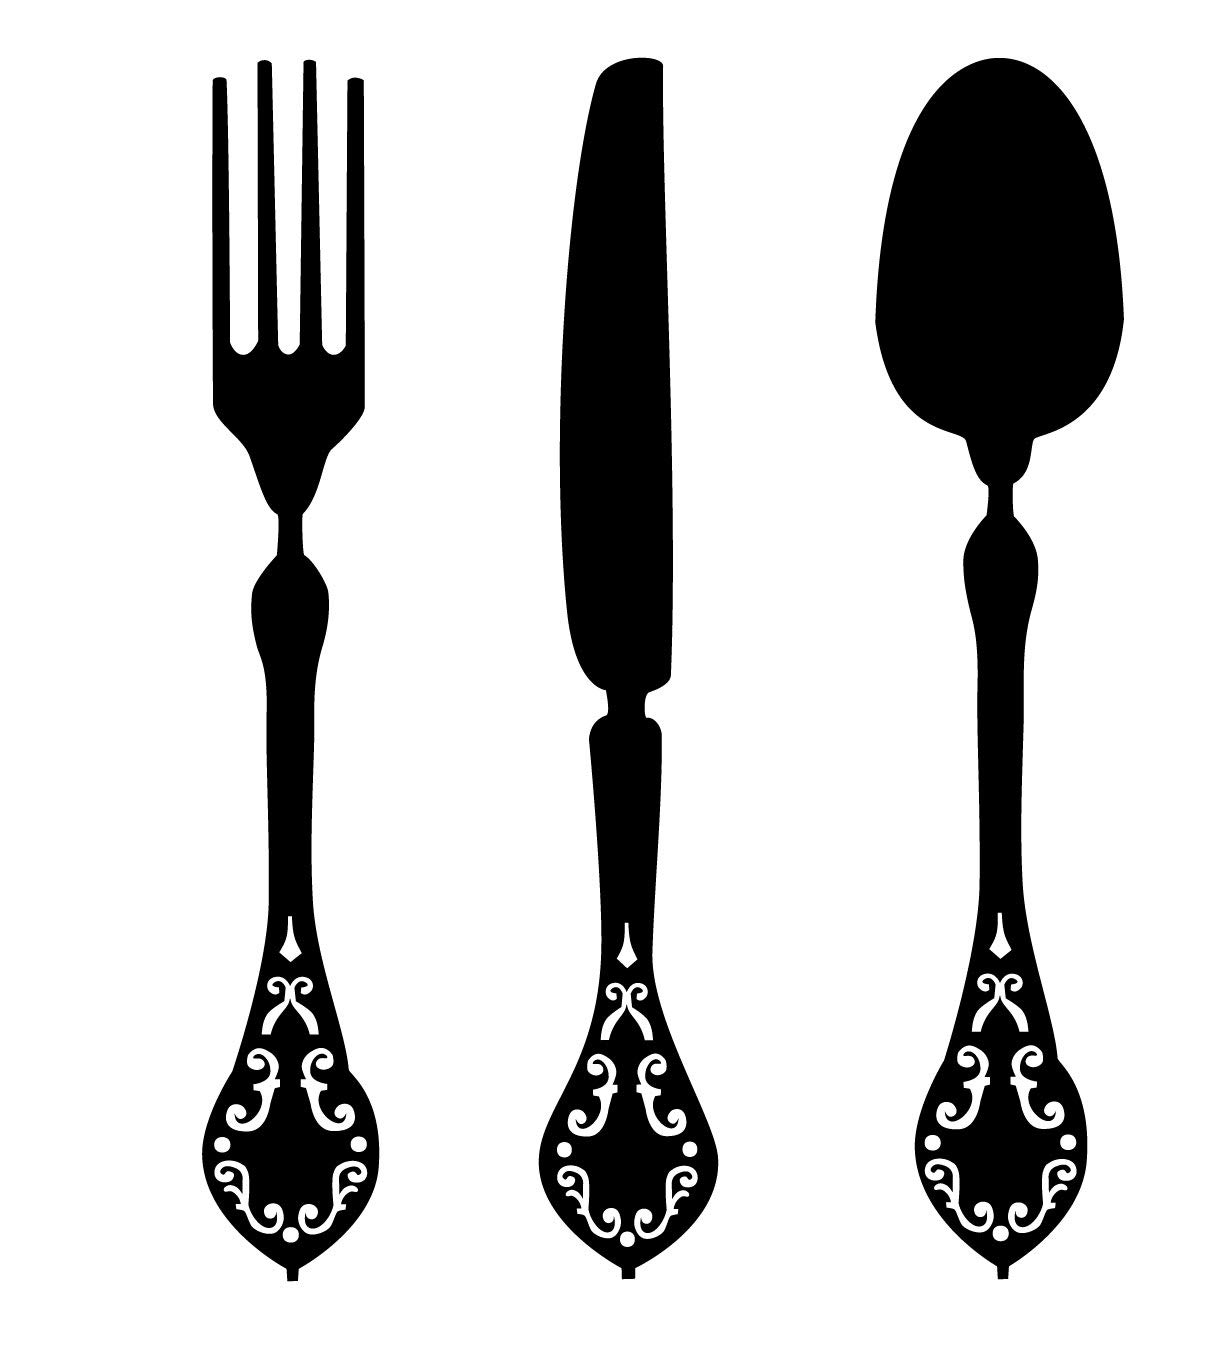 Fork, Knife and Spoon Elegant Vinyl Designs - Kitchen or Dining Room Wall Decals for Home or Restaurant Decor, 36-inch Tall, Black